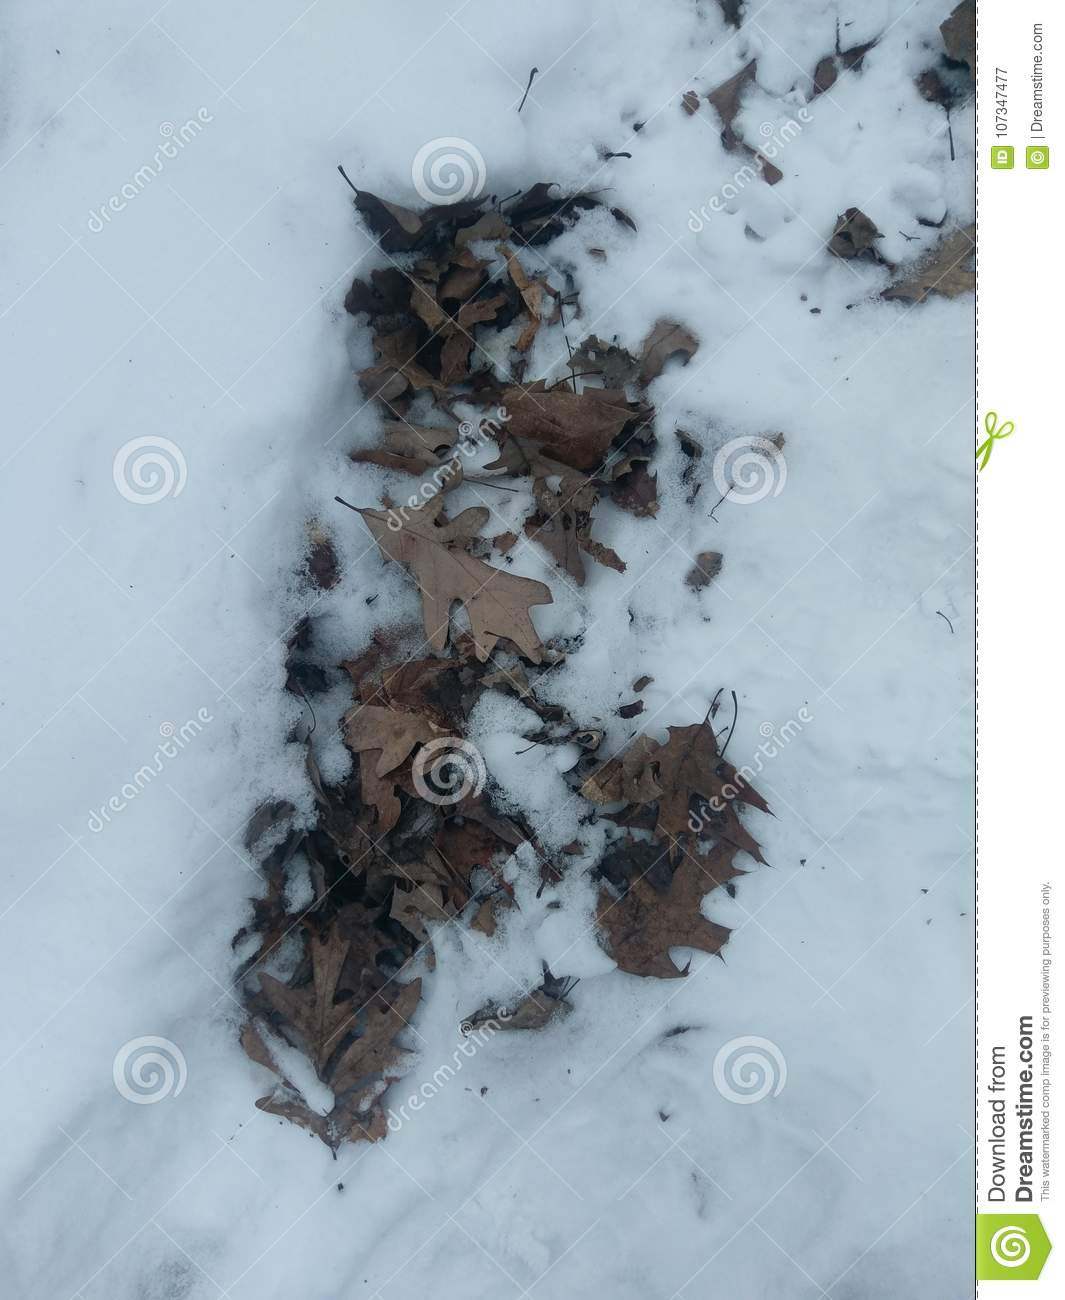 Leaves in the snow on January 7 2018 in western Indiana